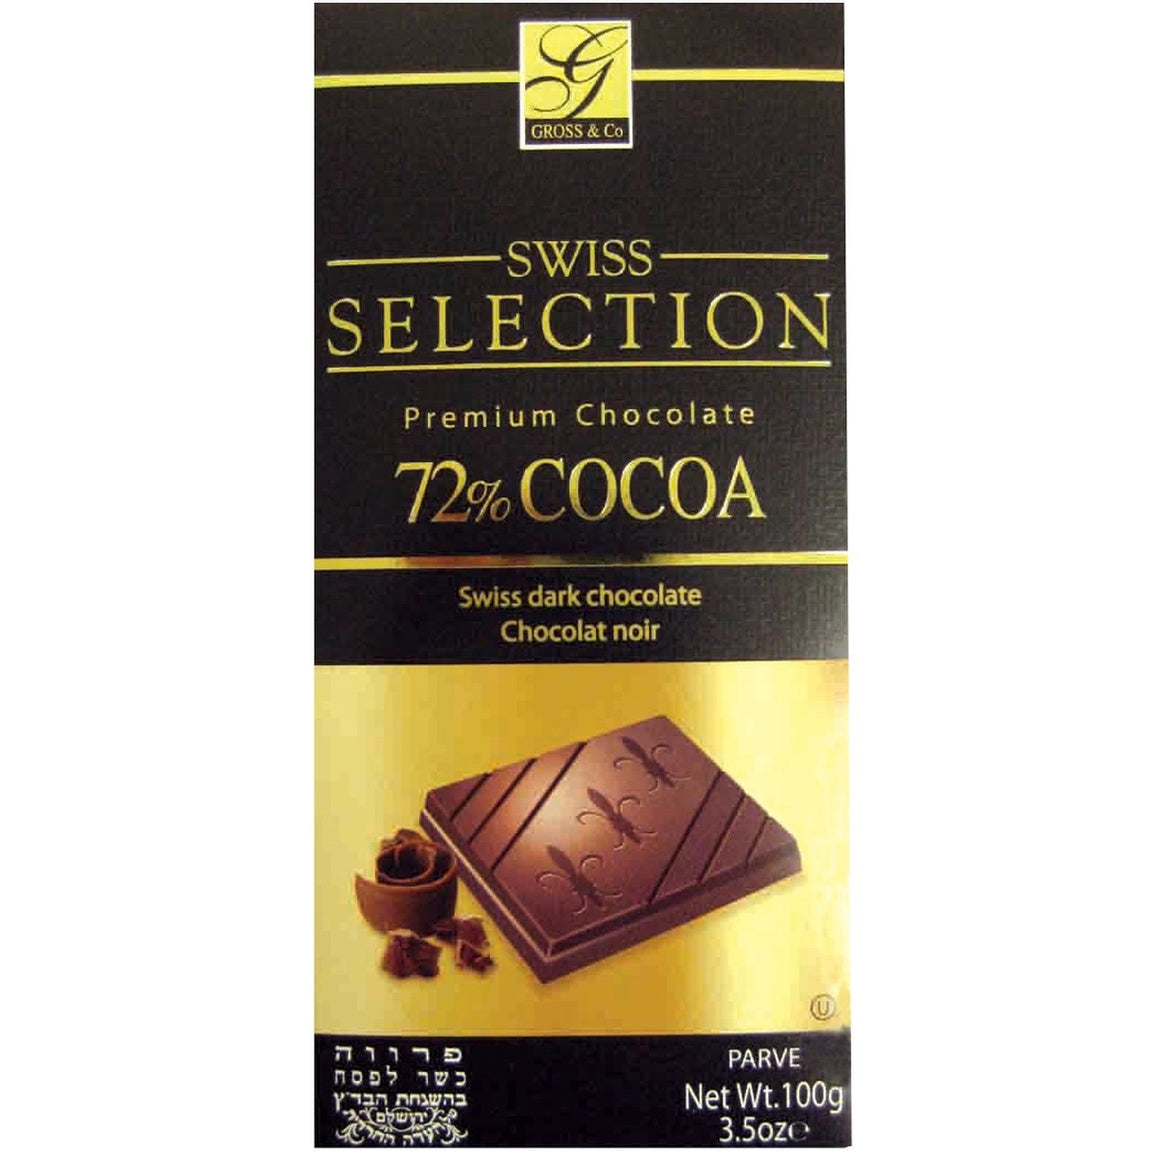 Gross Swiss Selection 72% Cocoa Dark Chocolate 100Gr